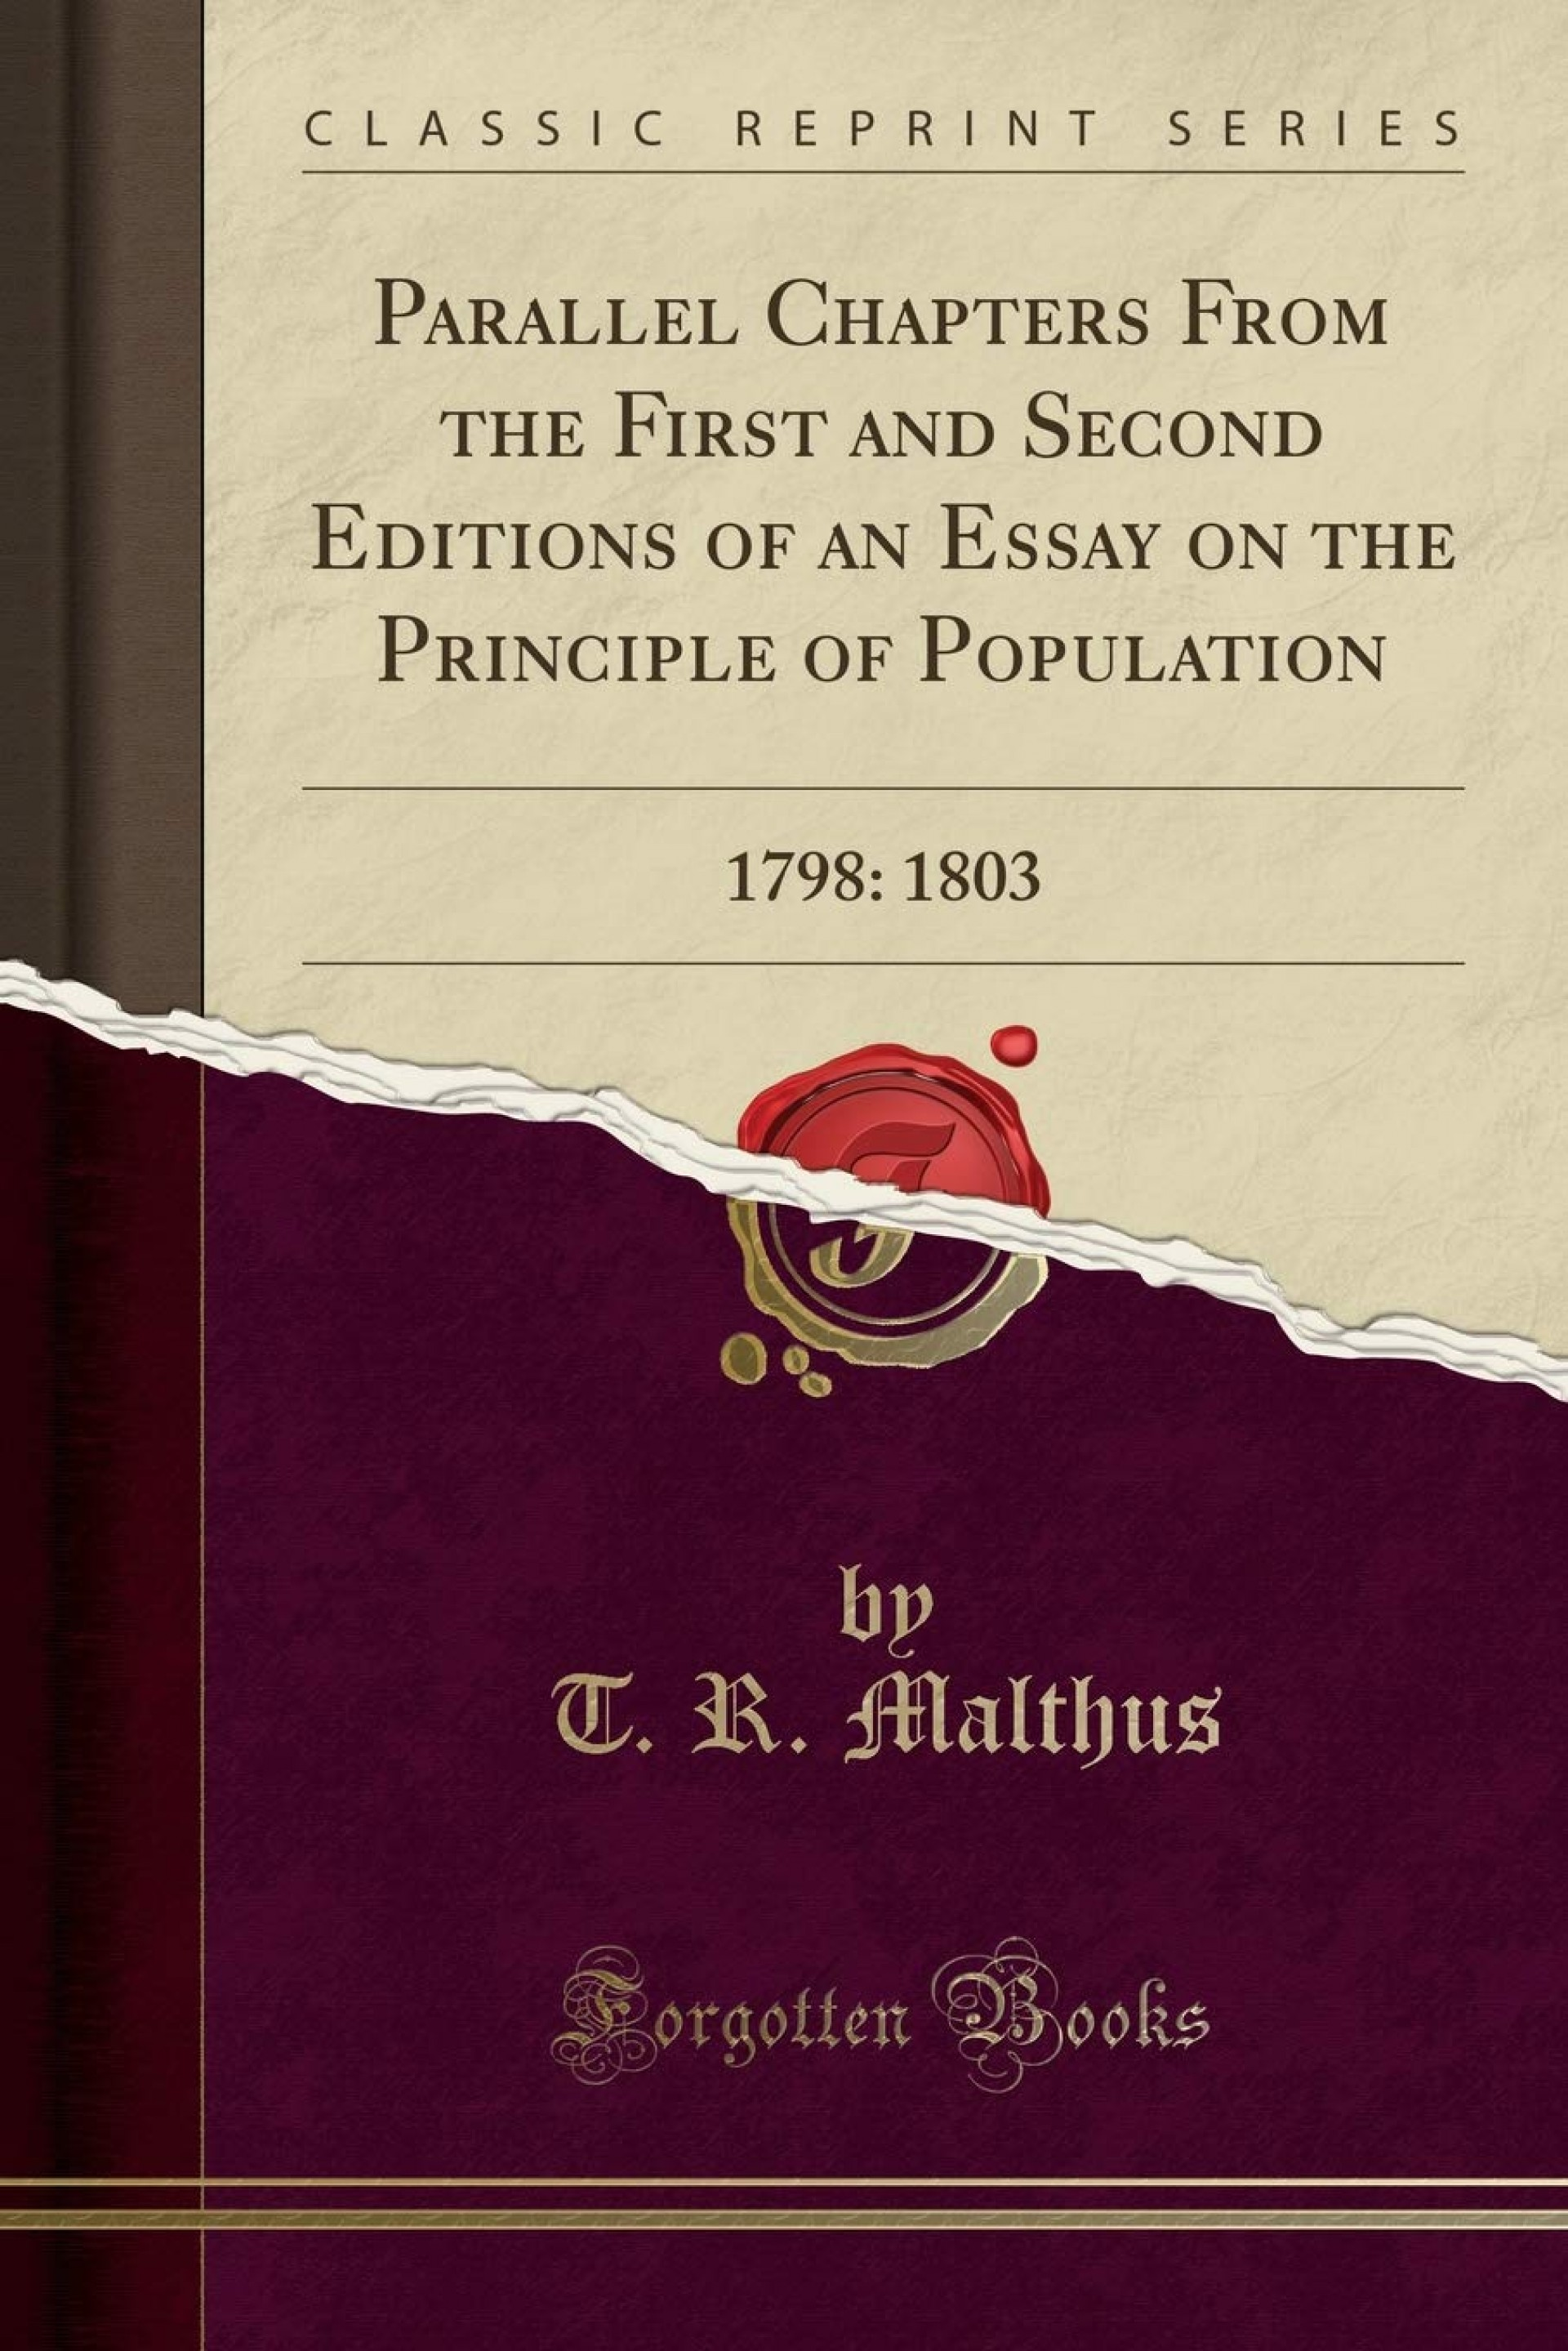 017 61xy24cllwl Essay On The Principle Of Population Singular Thomas Malthus Sparknotes Advocated Ap Euro 1920